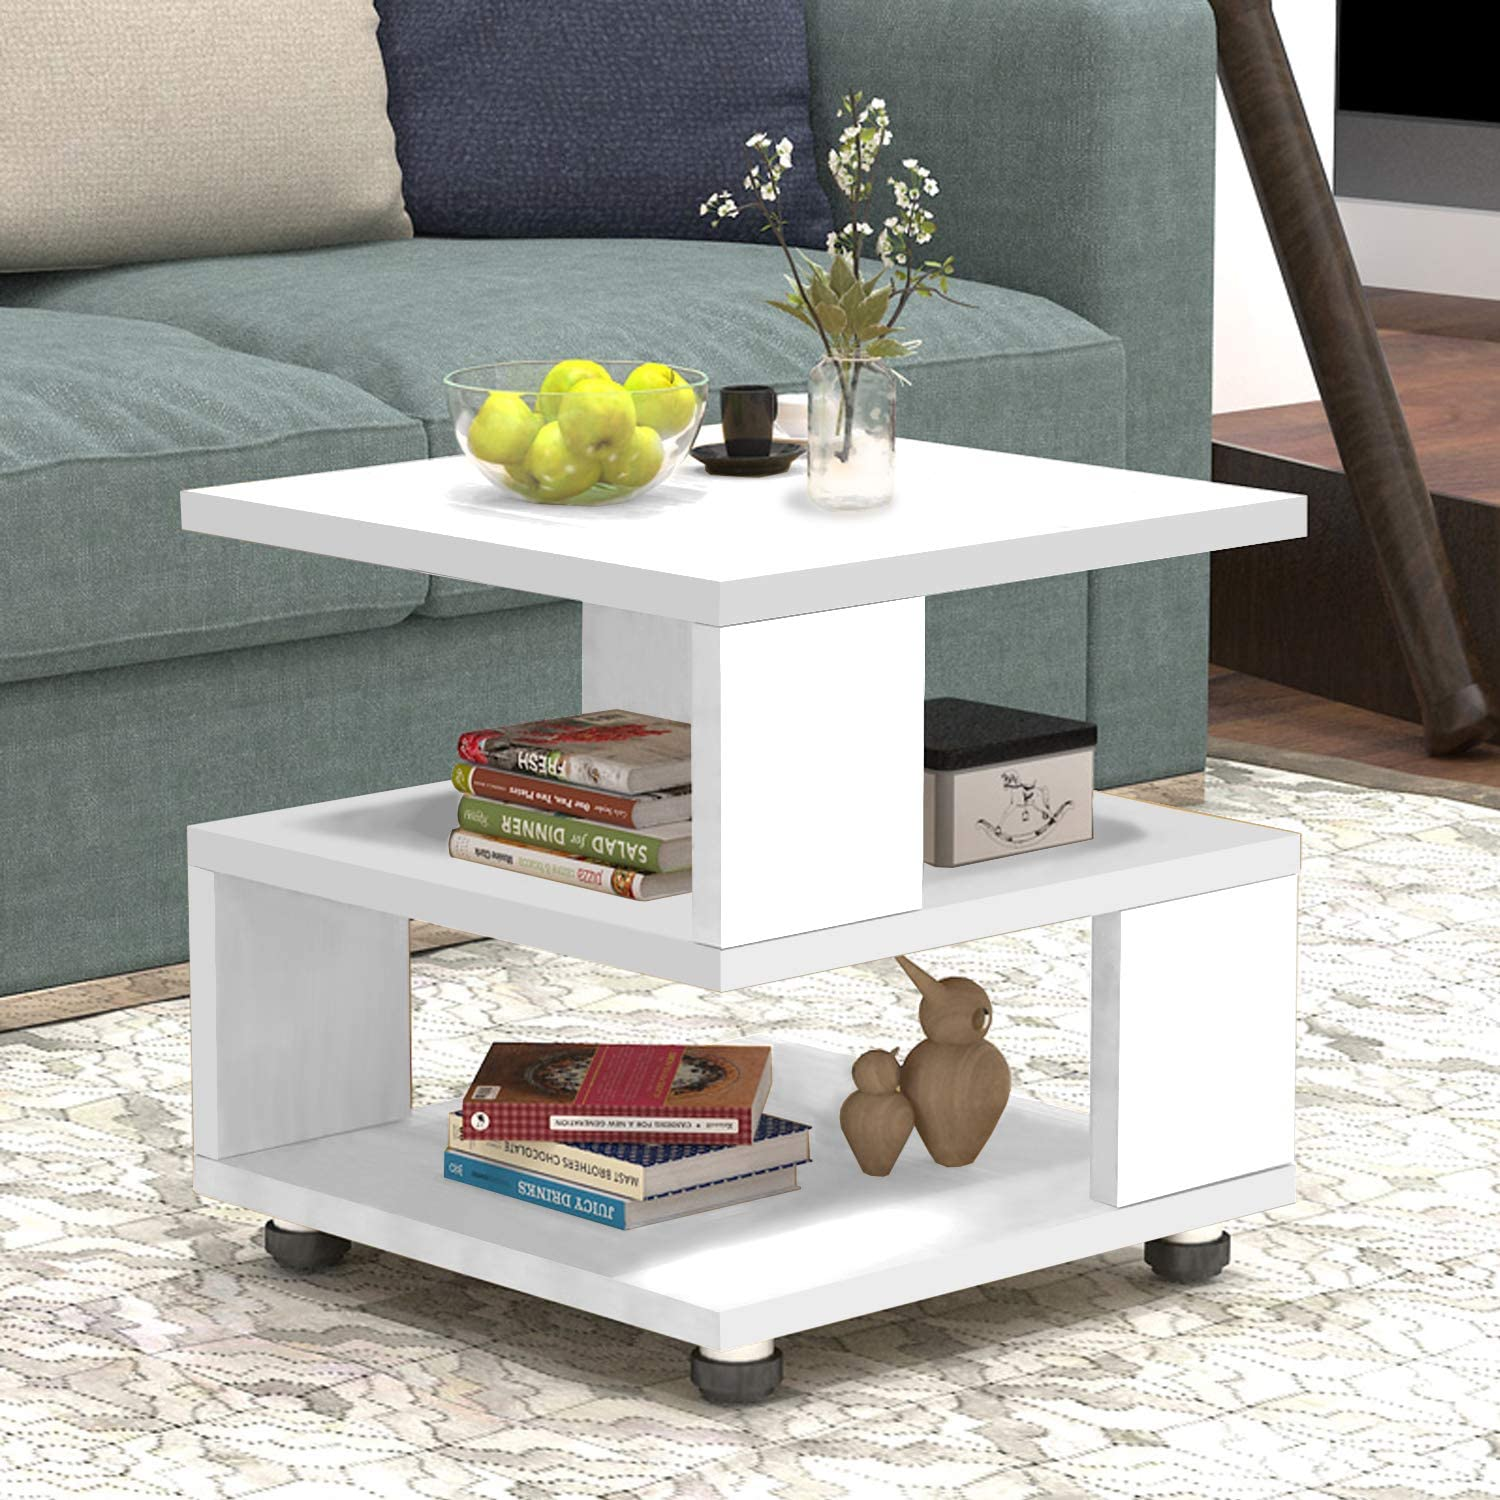 JERRY MAGGIE – Magic Cube Nightstands Japanese Tatami Classic Modern Style – 2 Tier Rectangle Hallow Design Night Stand Storage Bedside Table Storage White